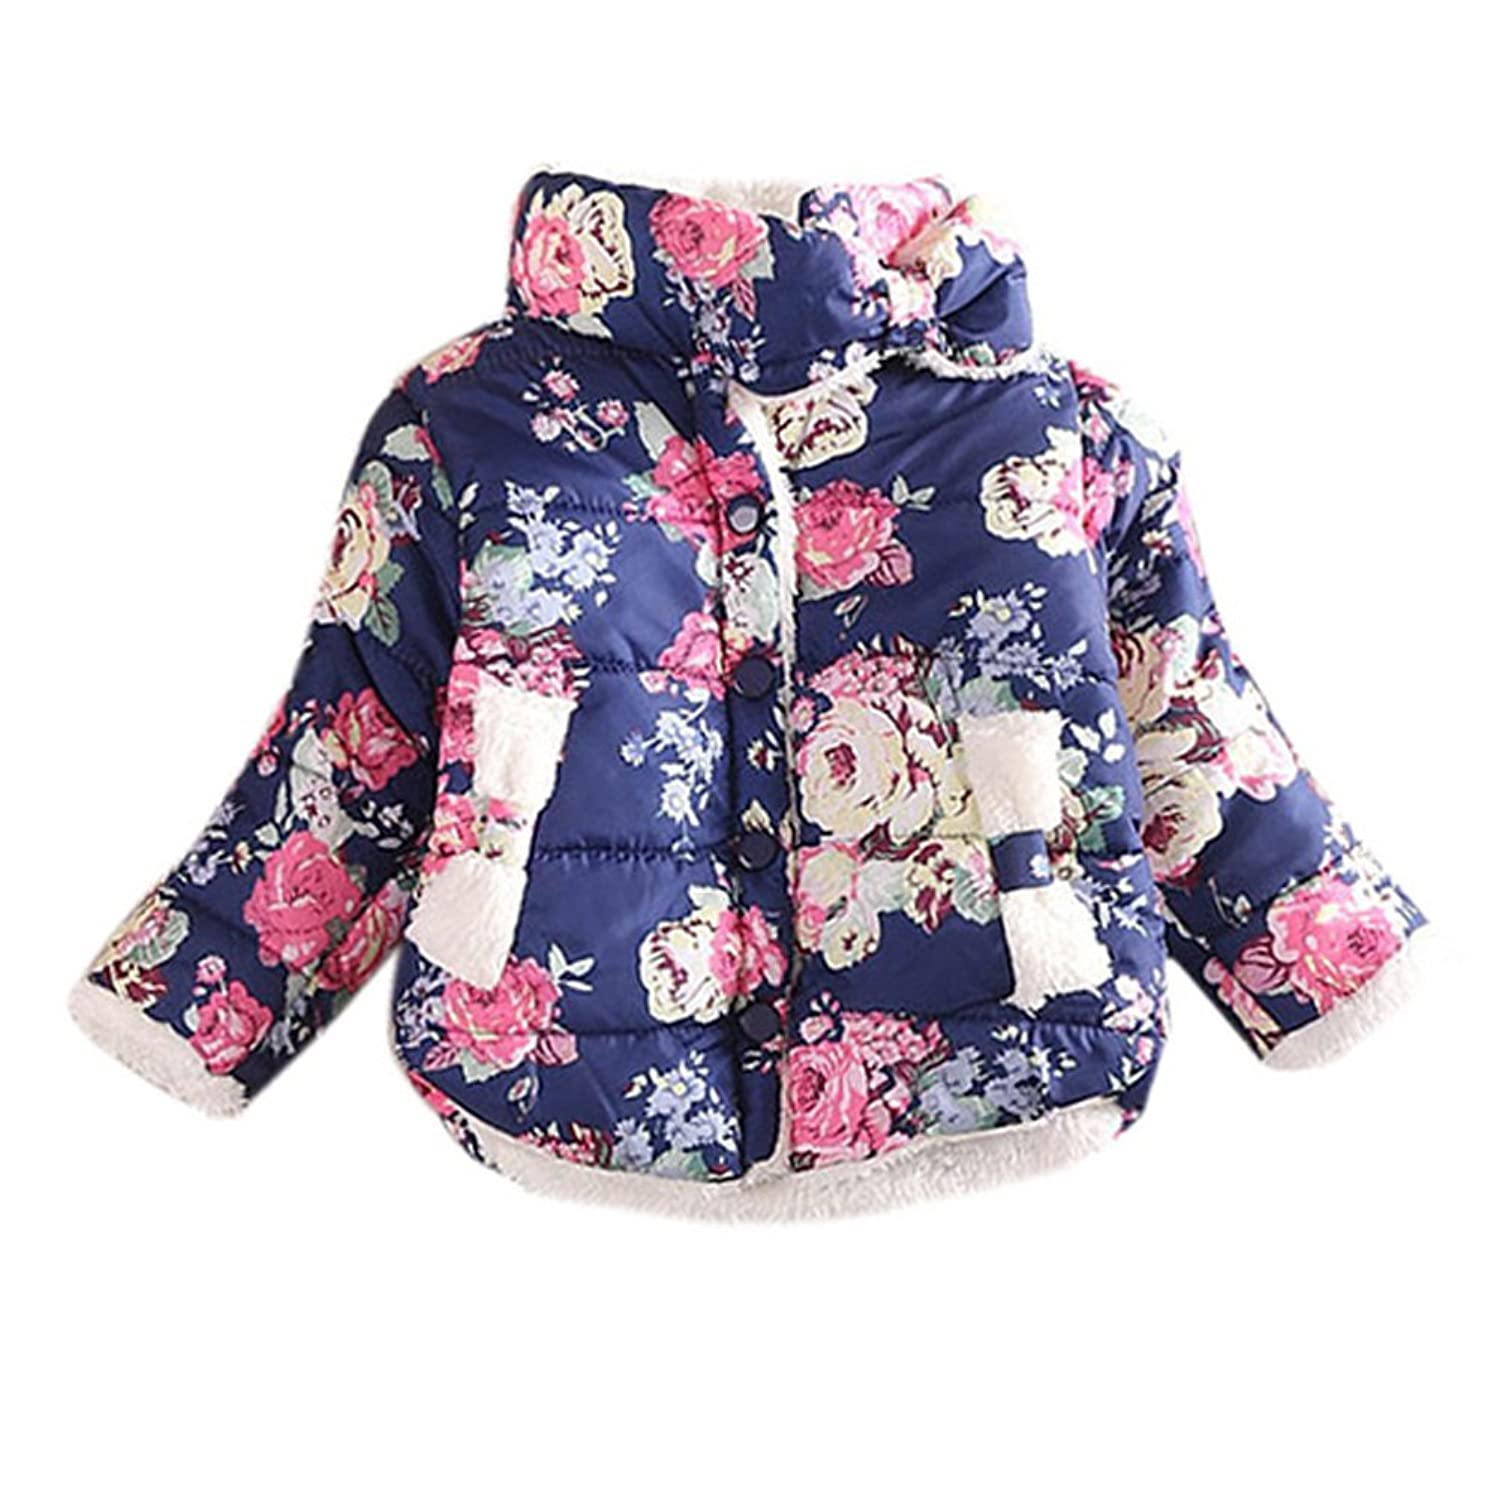 Urparcel Baby Girls Jackets Outerwear Winter Warm Down Coats Thick Floral Bow seiko premier snq144j1